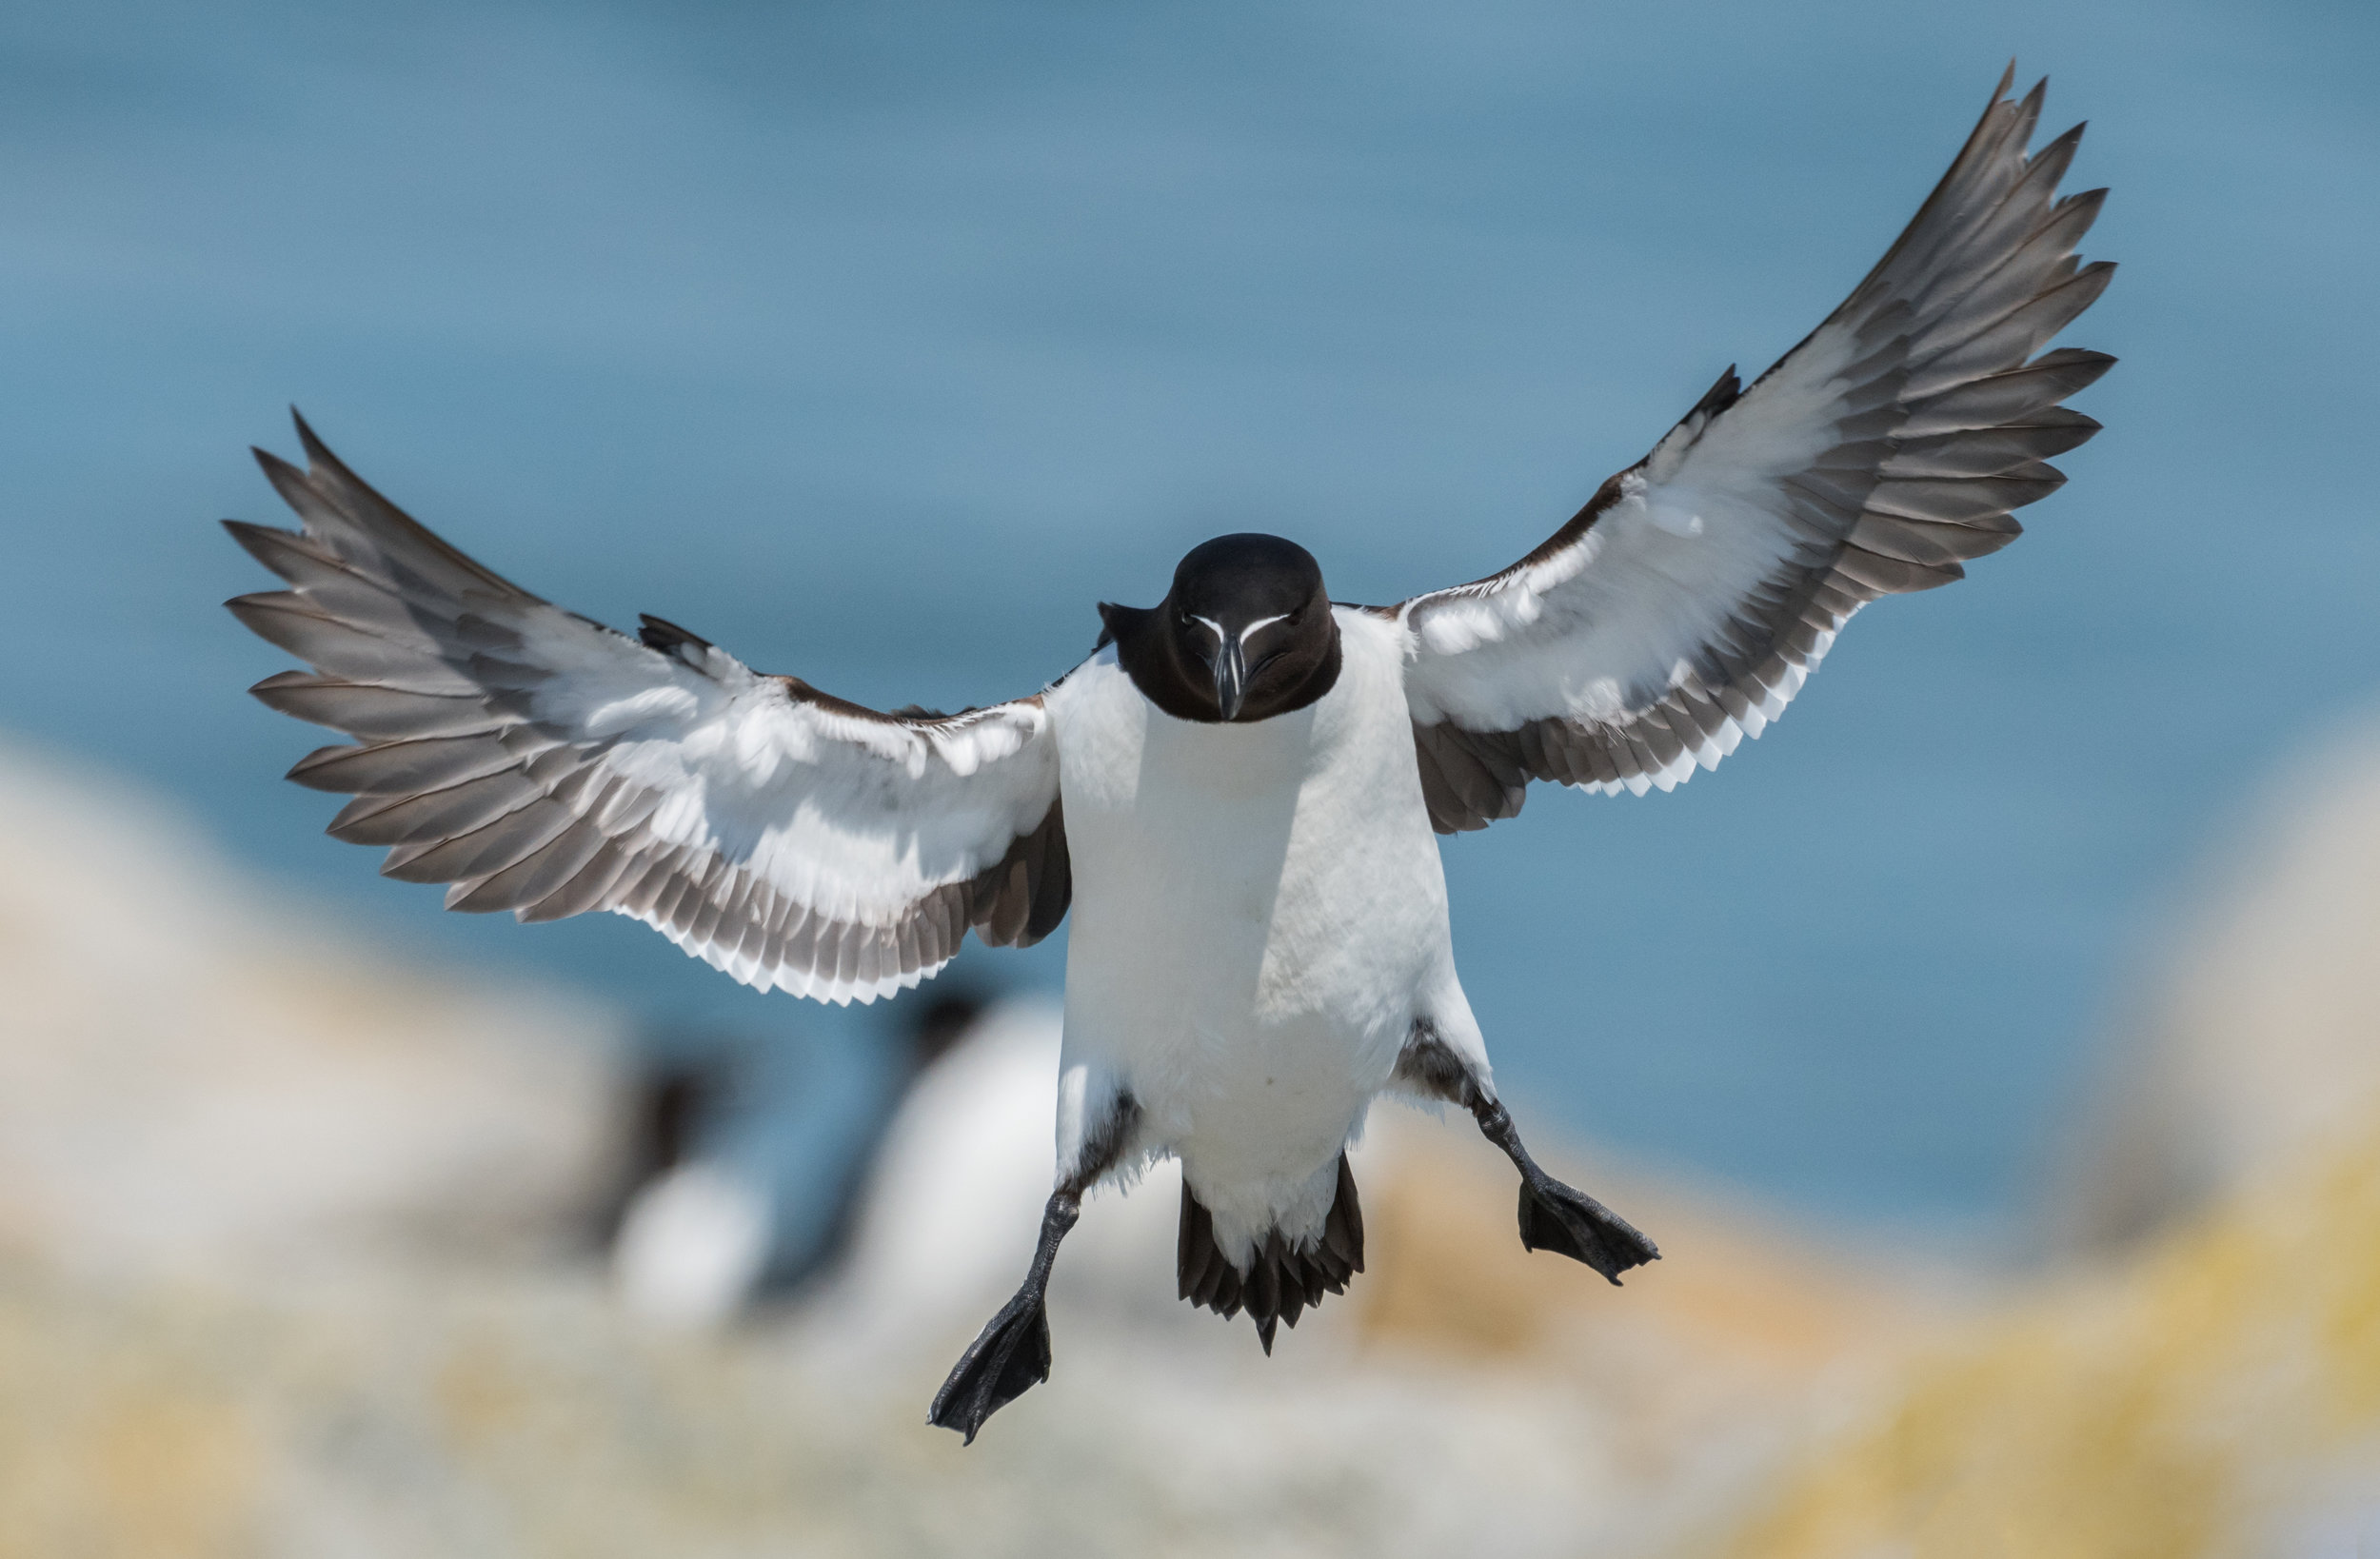 Razorbill - This image of a razorbill was taken on Machias Seal Island on the same trip that I took the photo of the puffin. The story isn't much different about this photo. Razorbills also nest on the island alongside the puffins and resemble penguins other than the obvious, that they can fly. I loved the straight on approach that the bird had with its wings spread. Camera settings: 1/4000,f7.1, ISO 800 on a Nikon D810 and 200-400mmf4 VR-II.